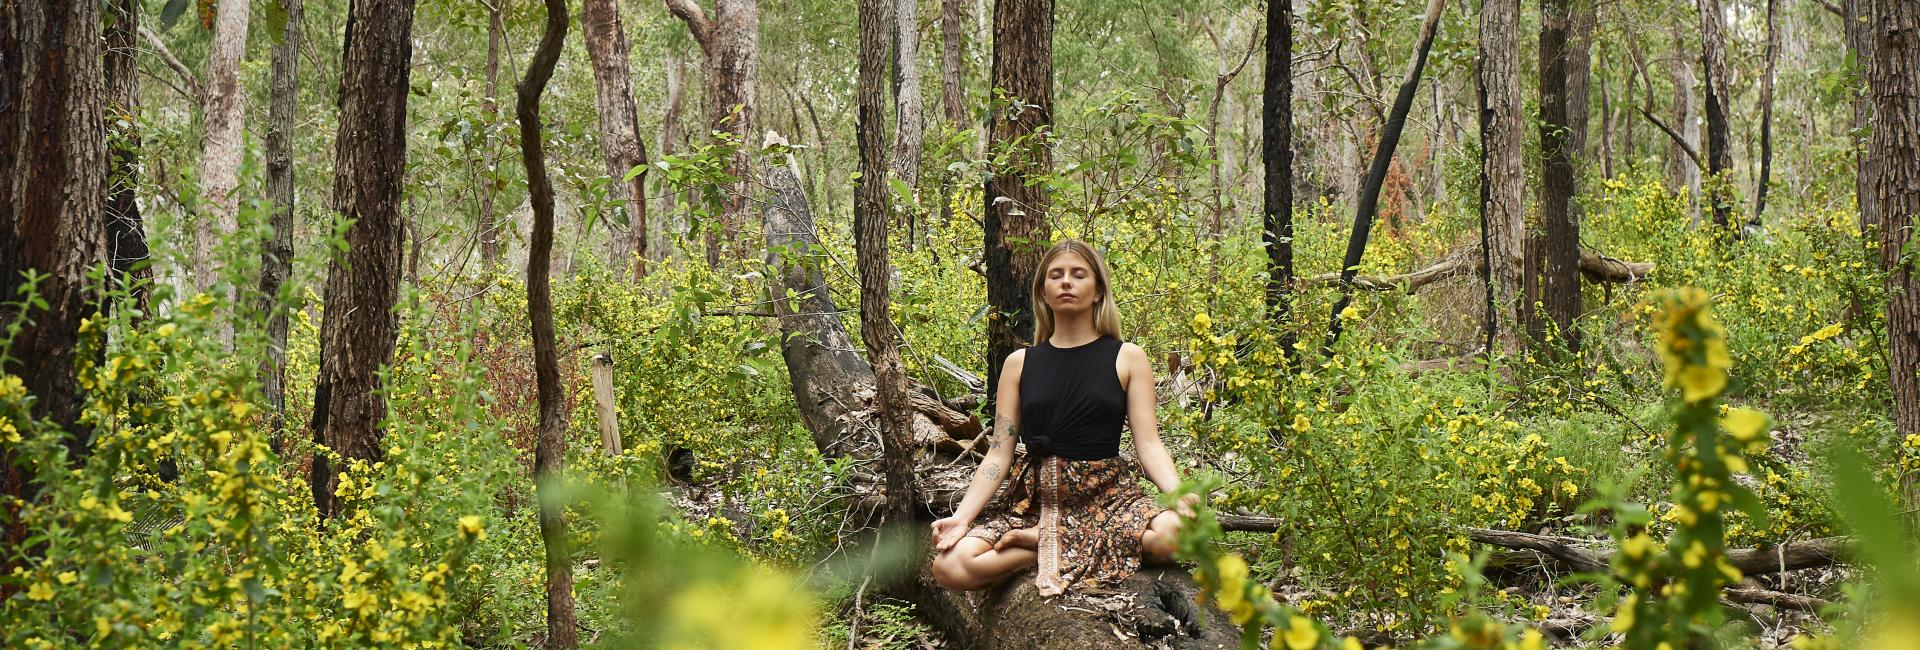 A girl sits cross legged meditating in a lush green forest